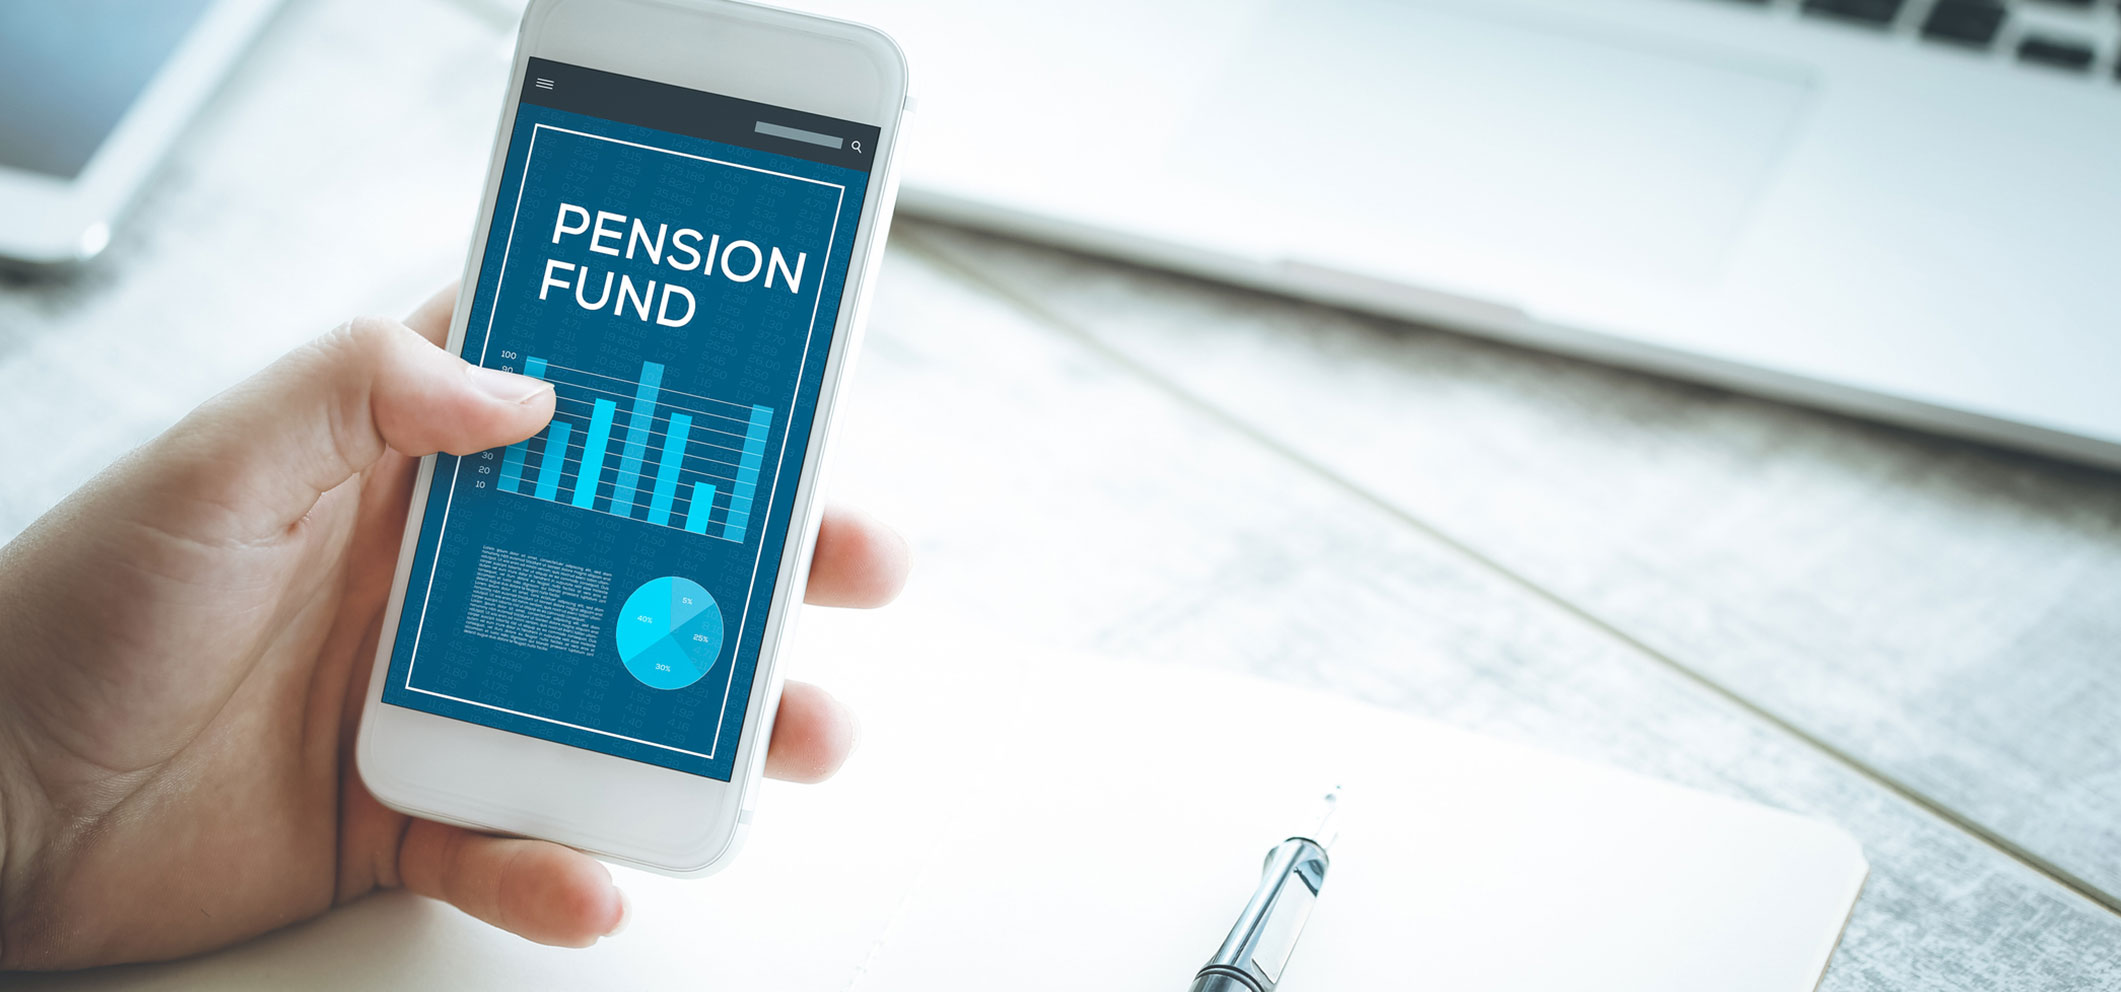 Holding Phone with the phrase 'Pension Fund' on it